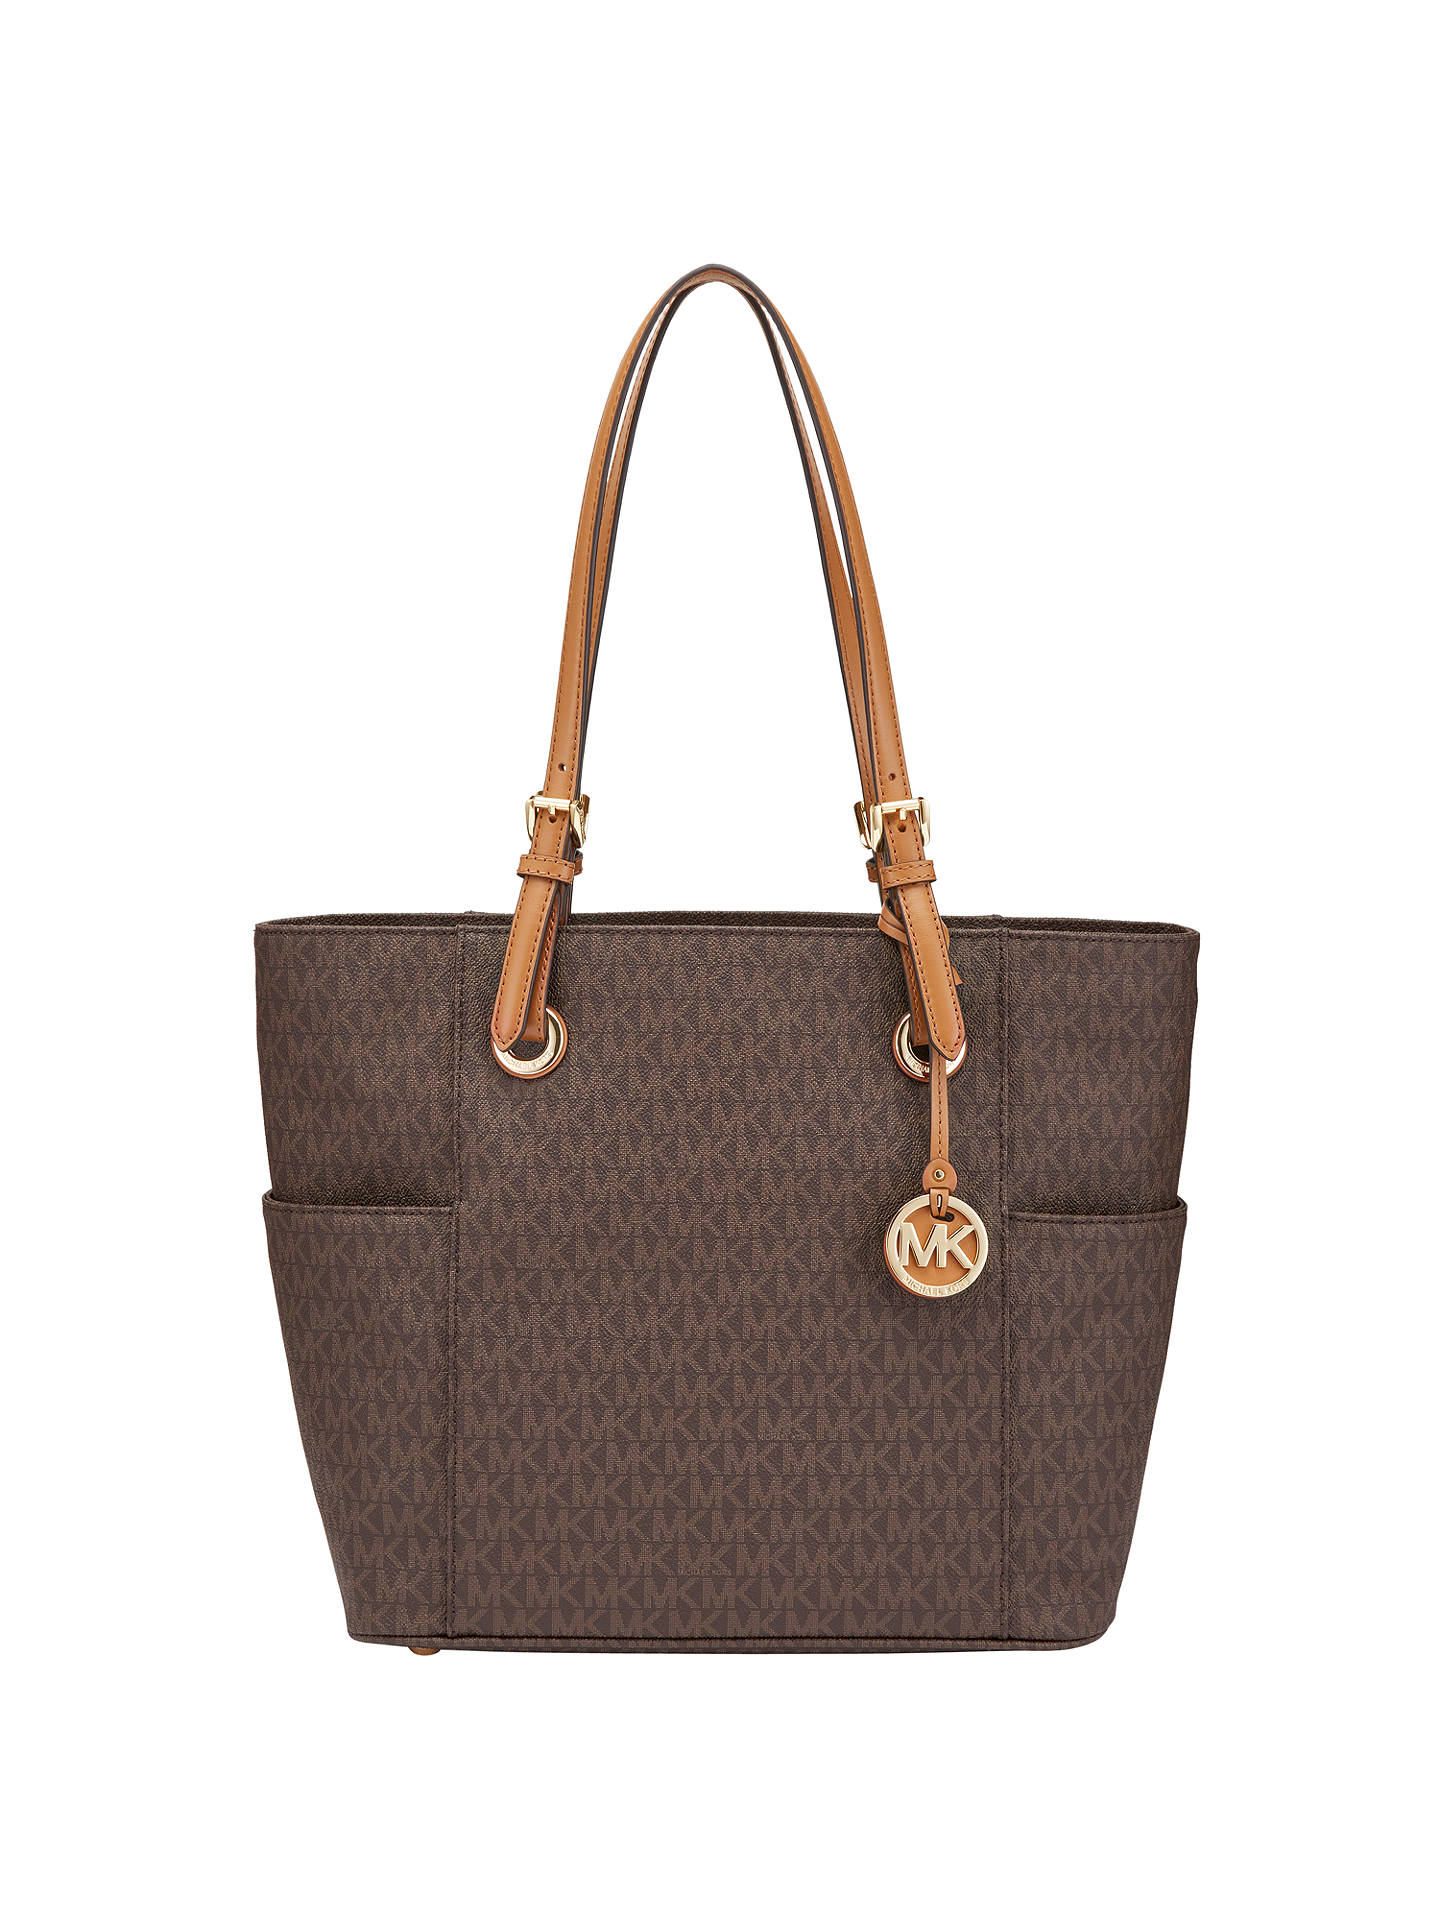 e6727ffad70f Buy MICHAEL Michael Kors Jet Set Signature Tote Bag, Brown Online at  johnlewis.com ...